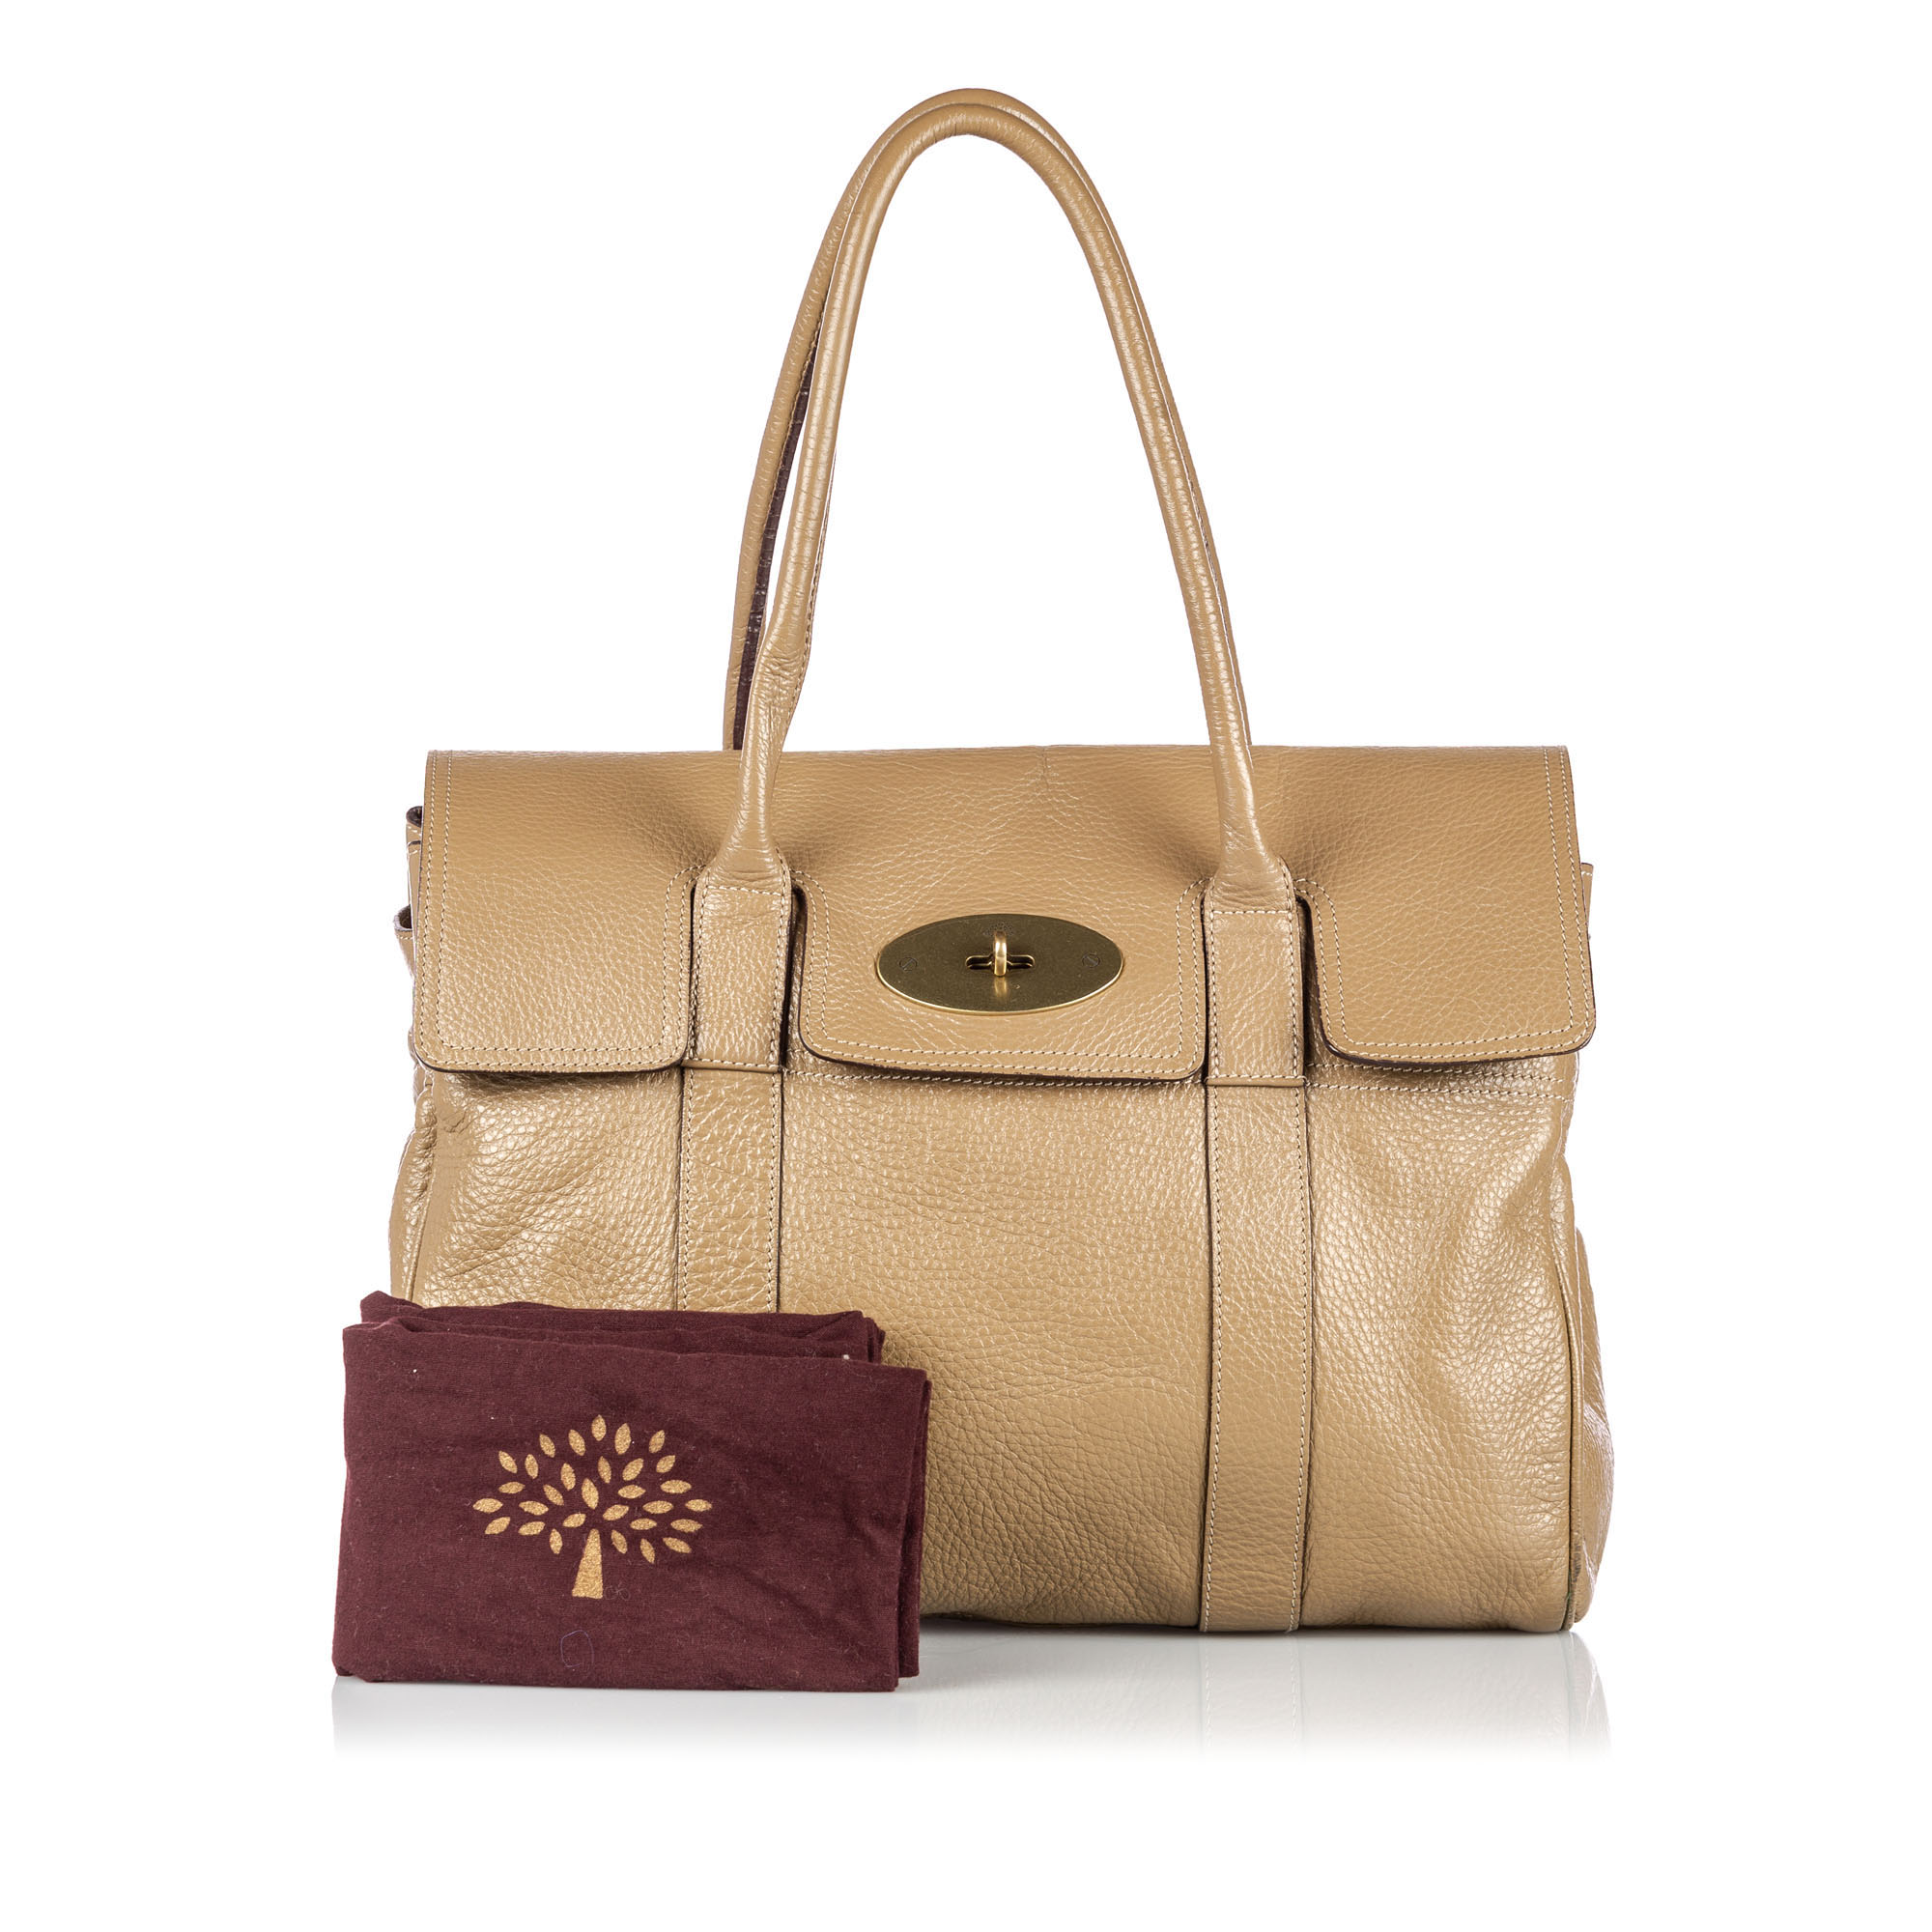 Details About Pre Loved Mulberry Brown Beige Others Leather Bayswater Handbag United Kingdom